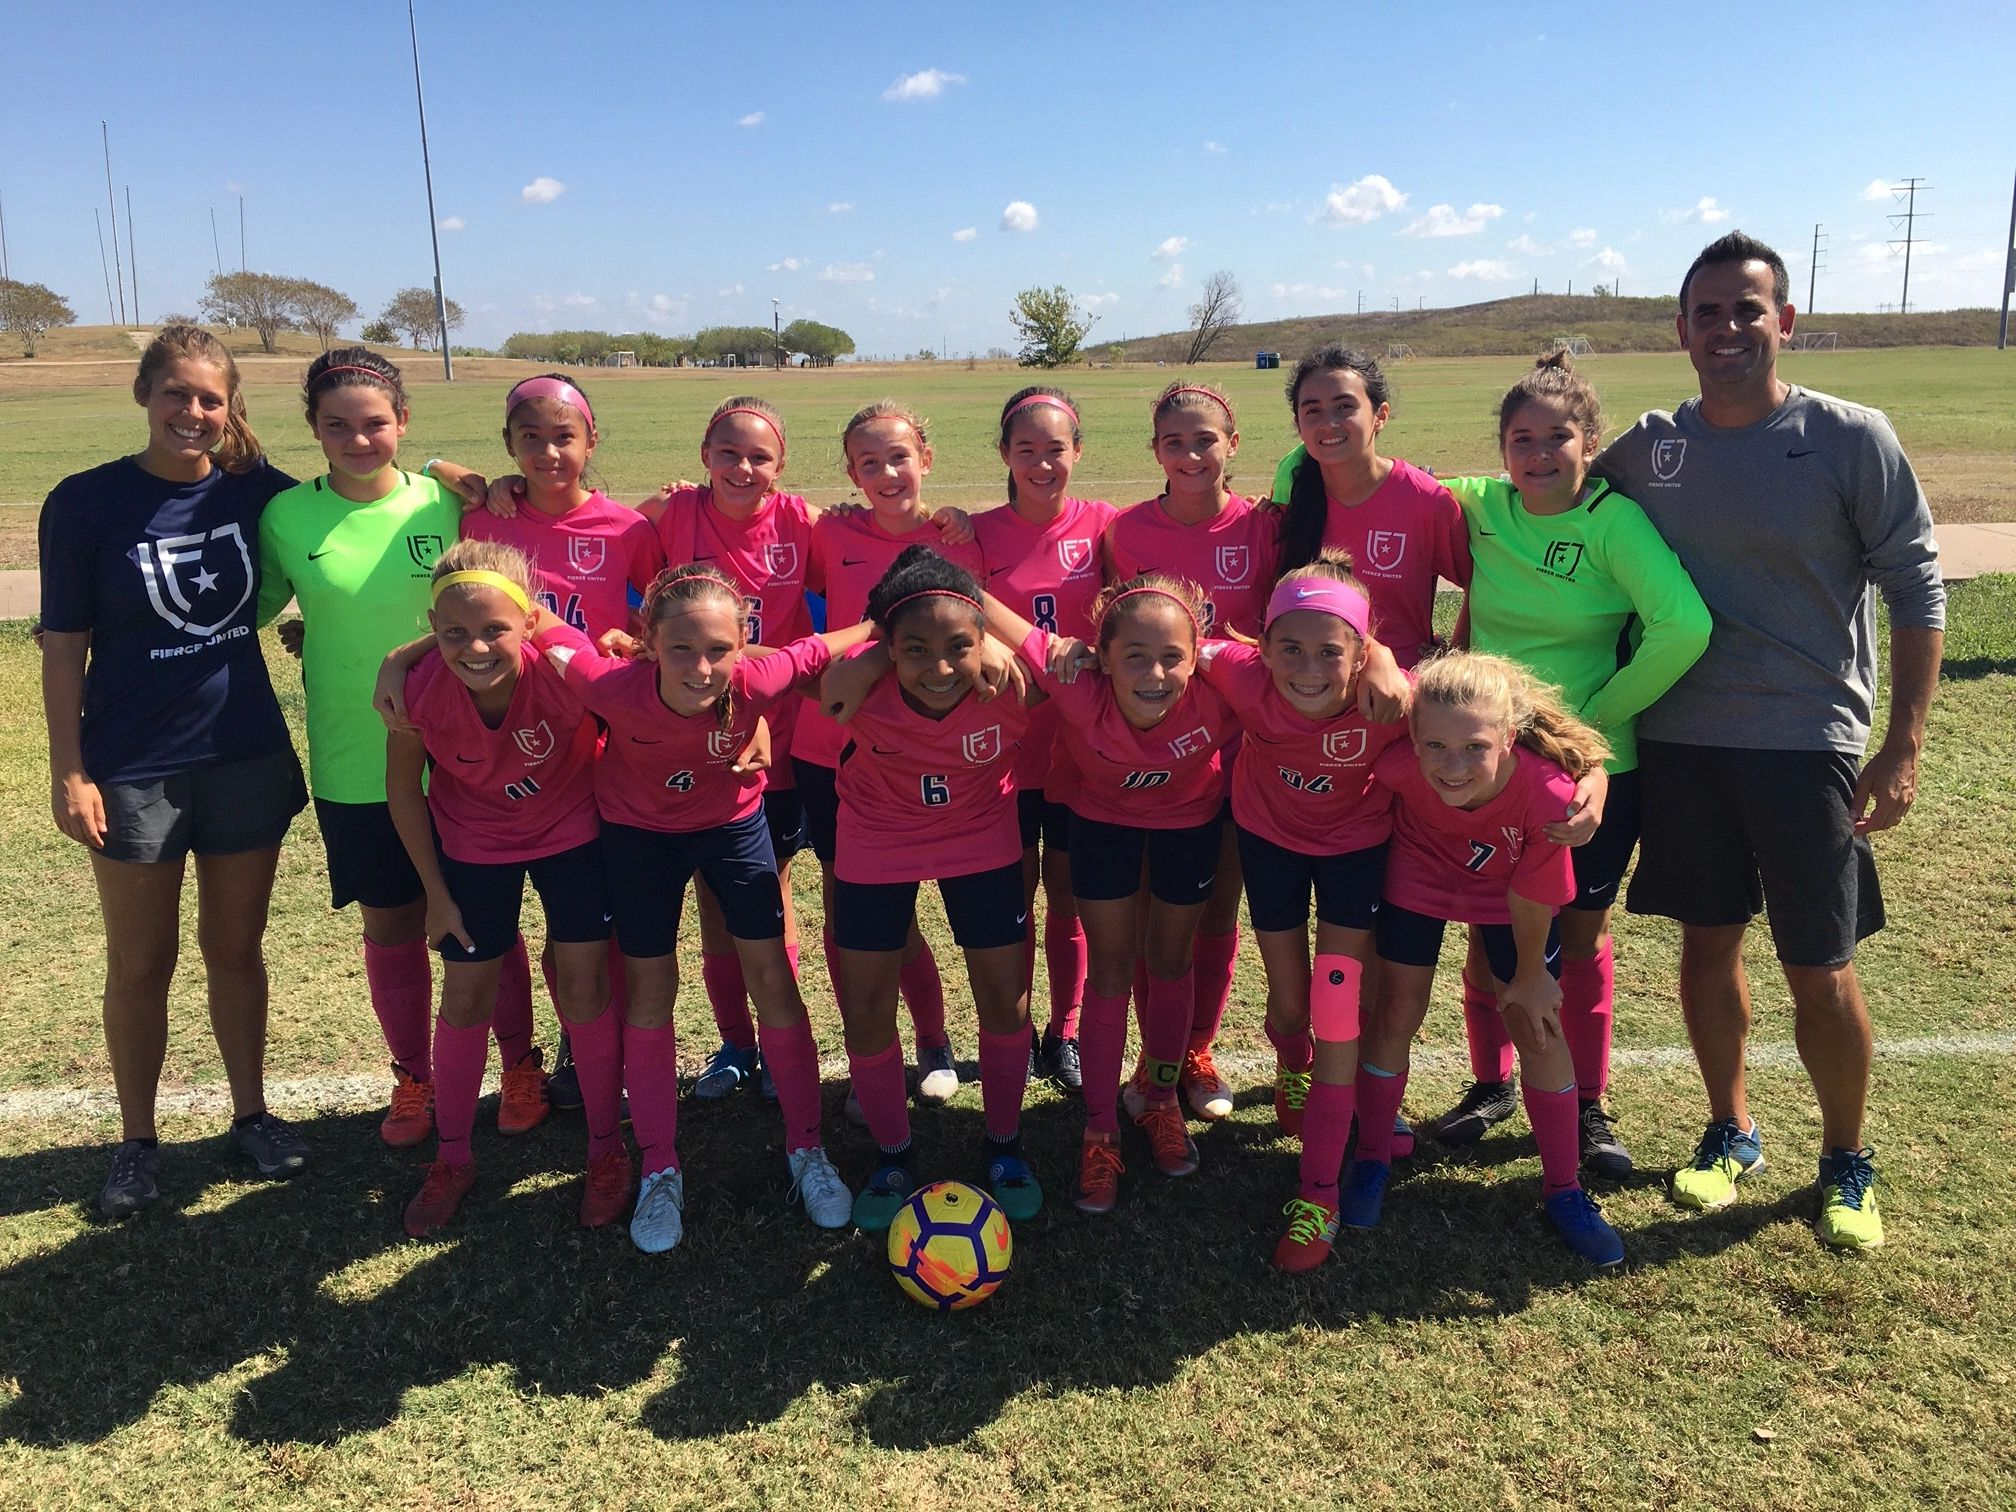 07 girls pose for a picture before a WDDOA matchup against Lonestar